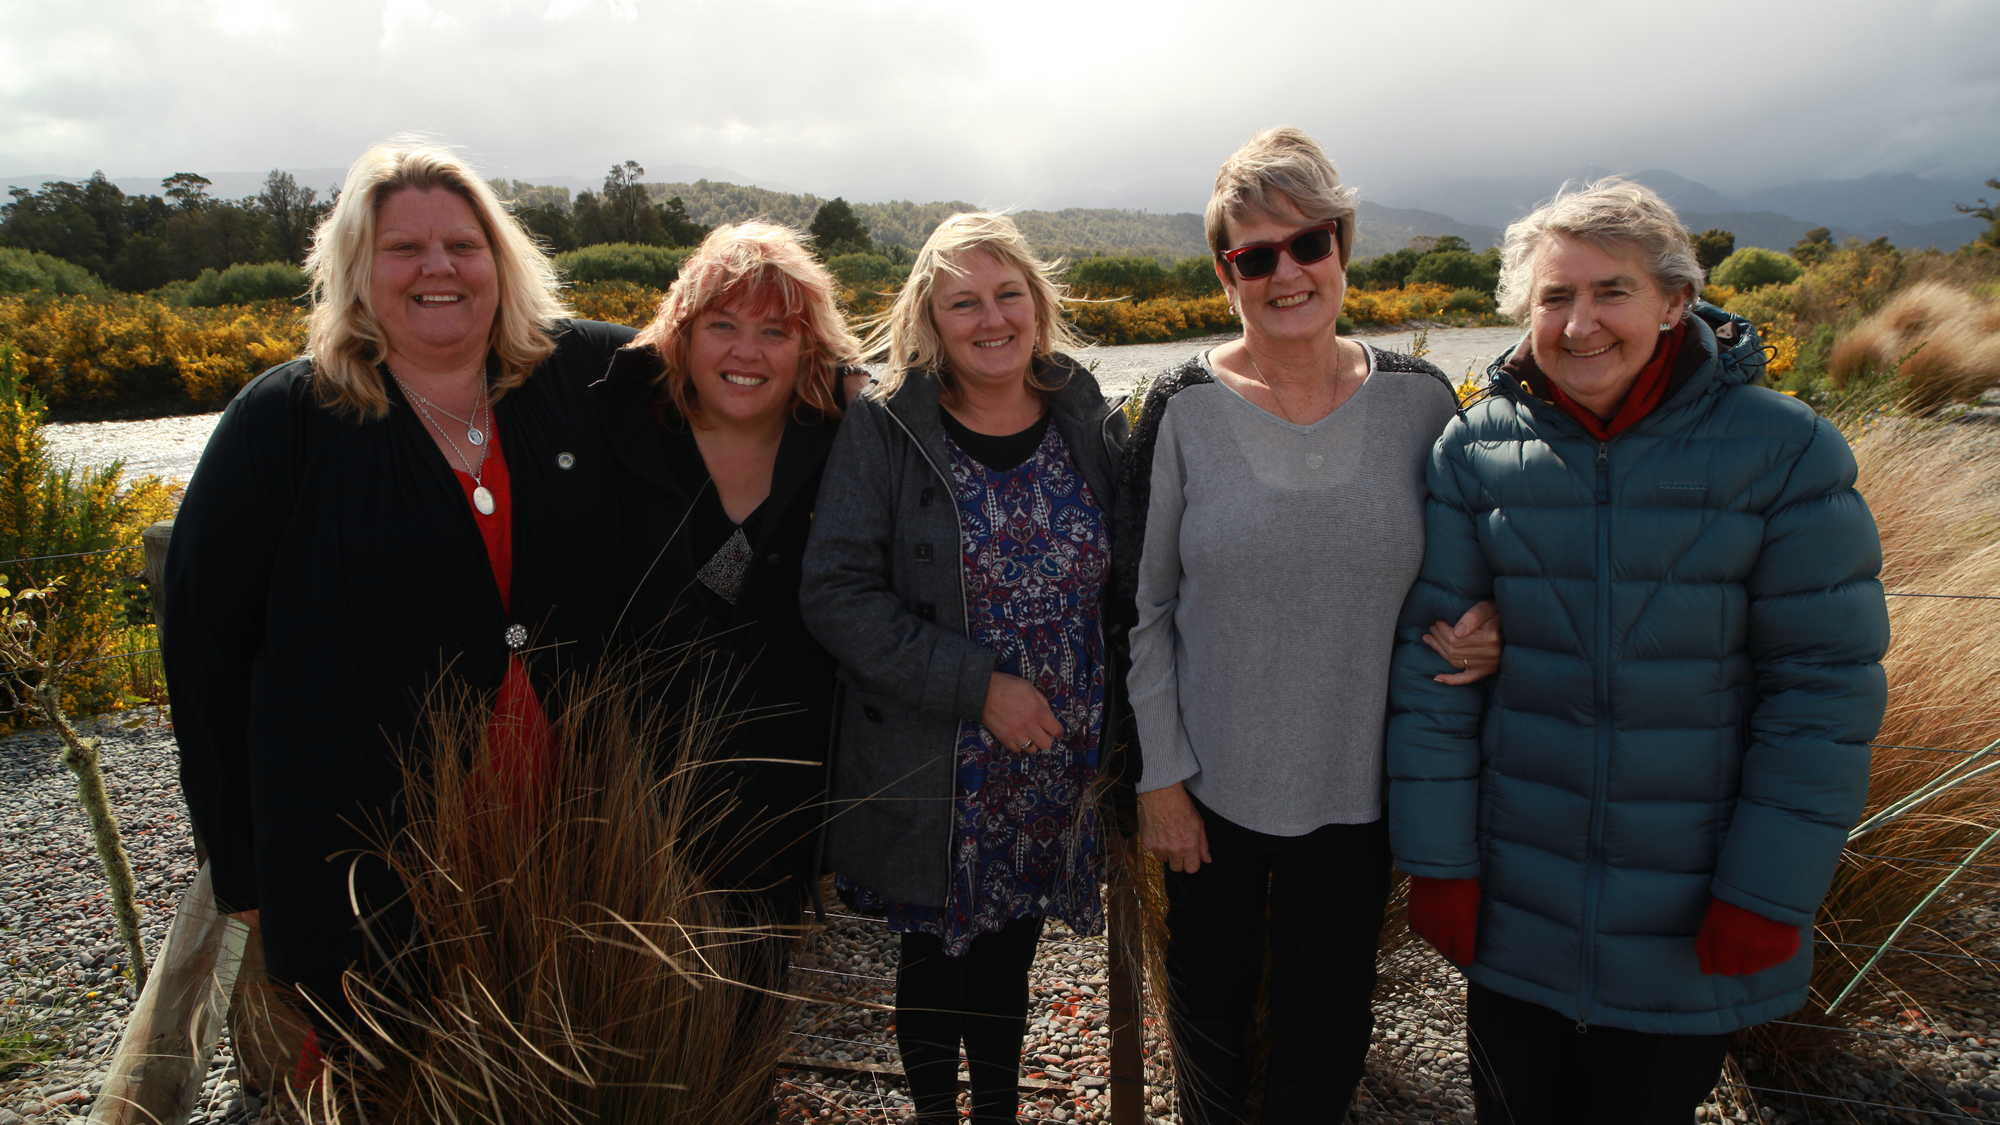 The Women of Pike River (image 1)